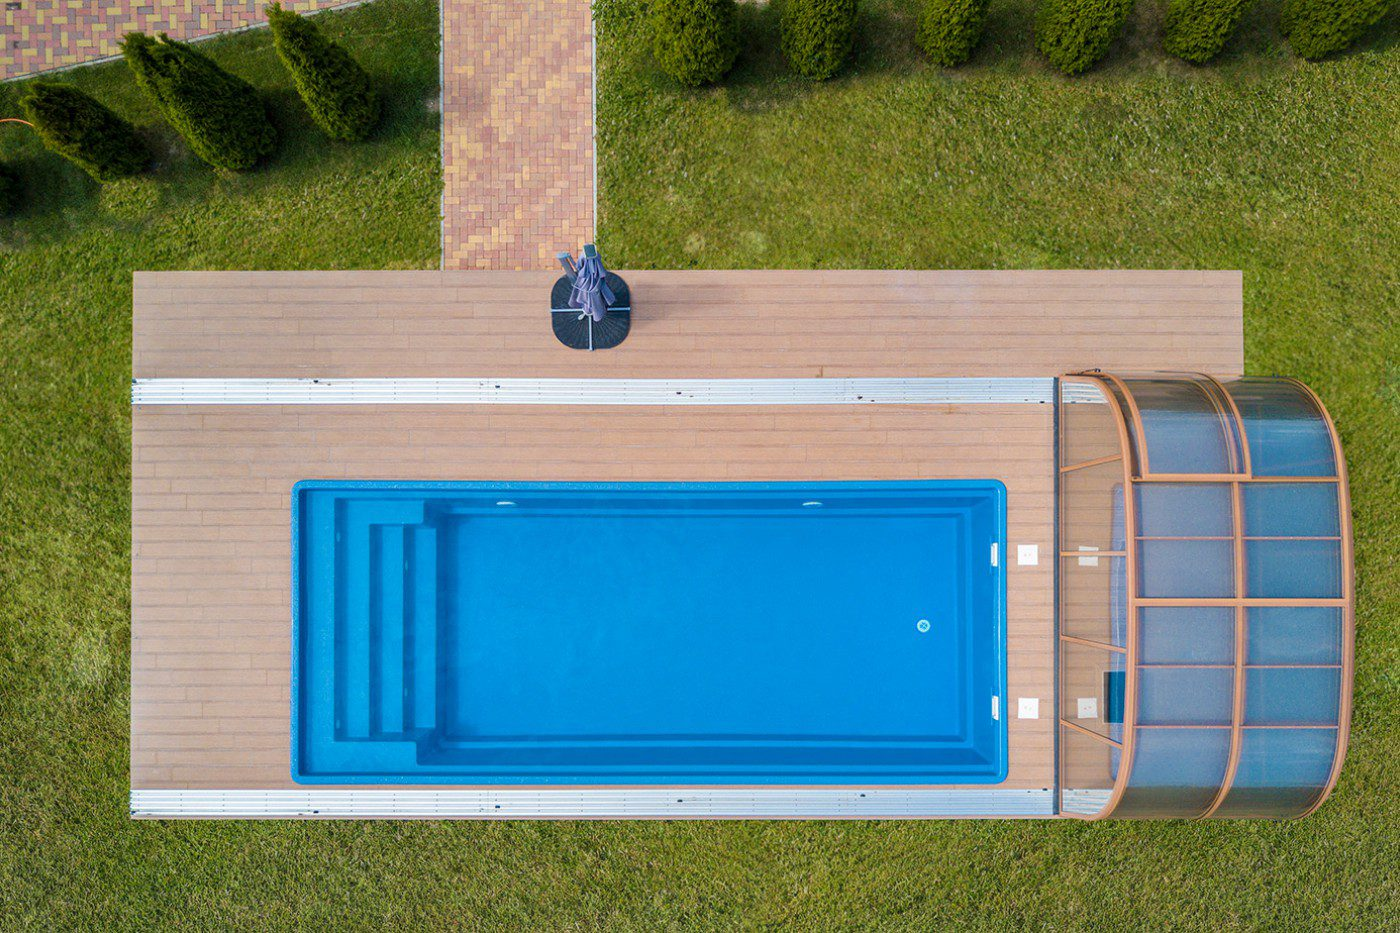 Oscar 9M ceramic-fibreglass core swimming pool with steps and safety cover